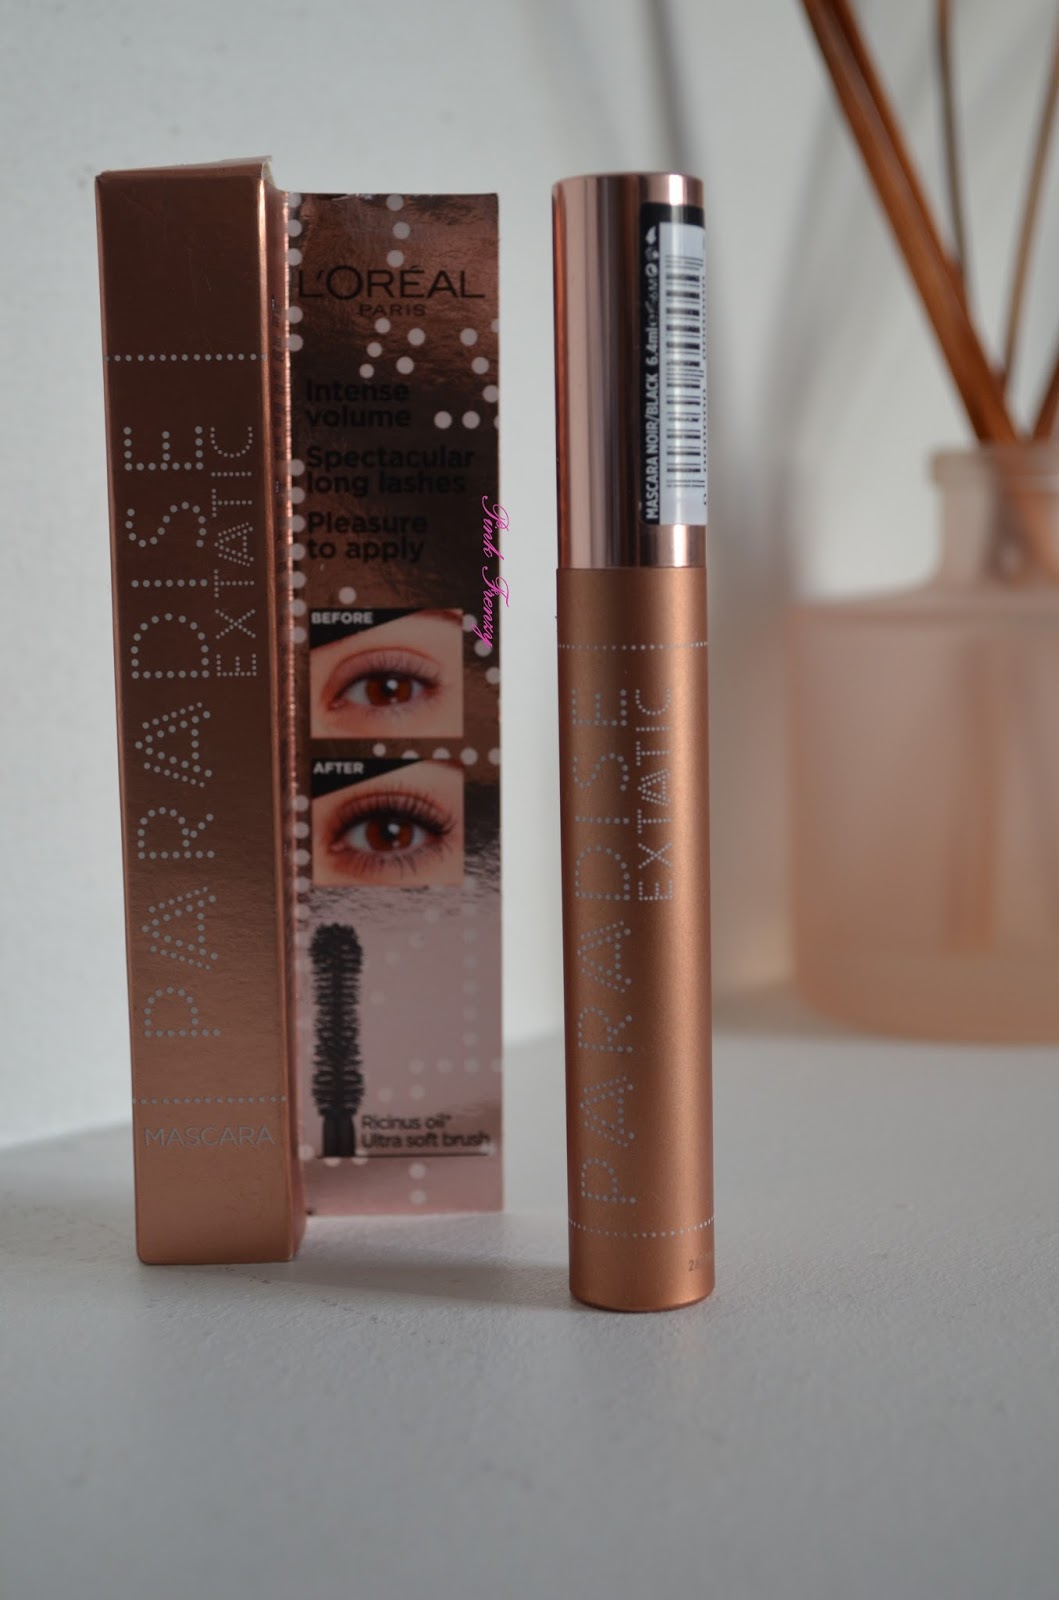 d40f3f4caea The mascara comes in a beautiful rose gold packaging. Other then that the  packaging is a simple tube. It has a hourglass shape brush, which you can  see down ...